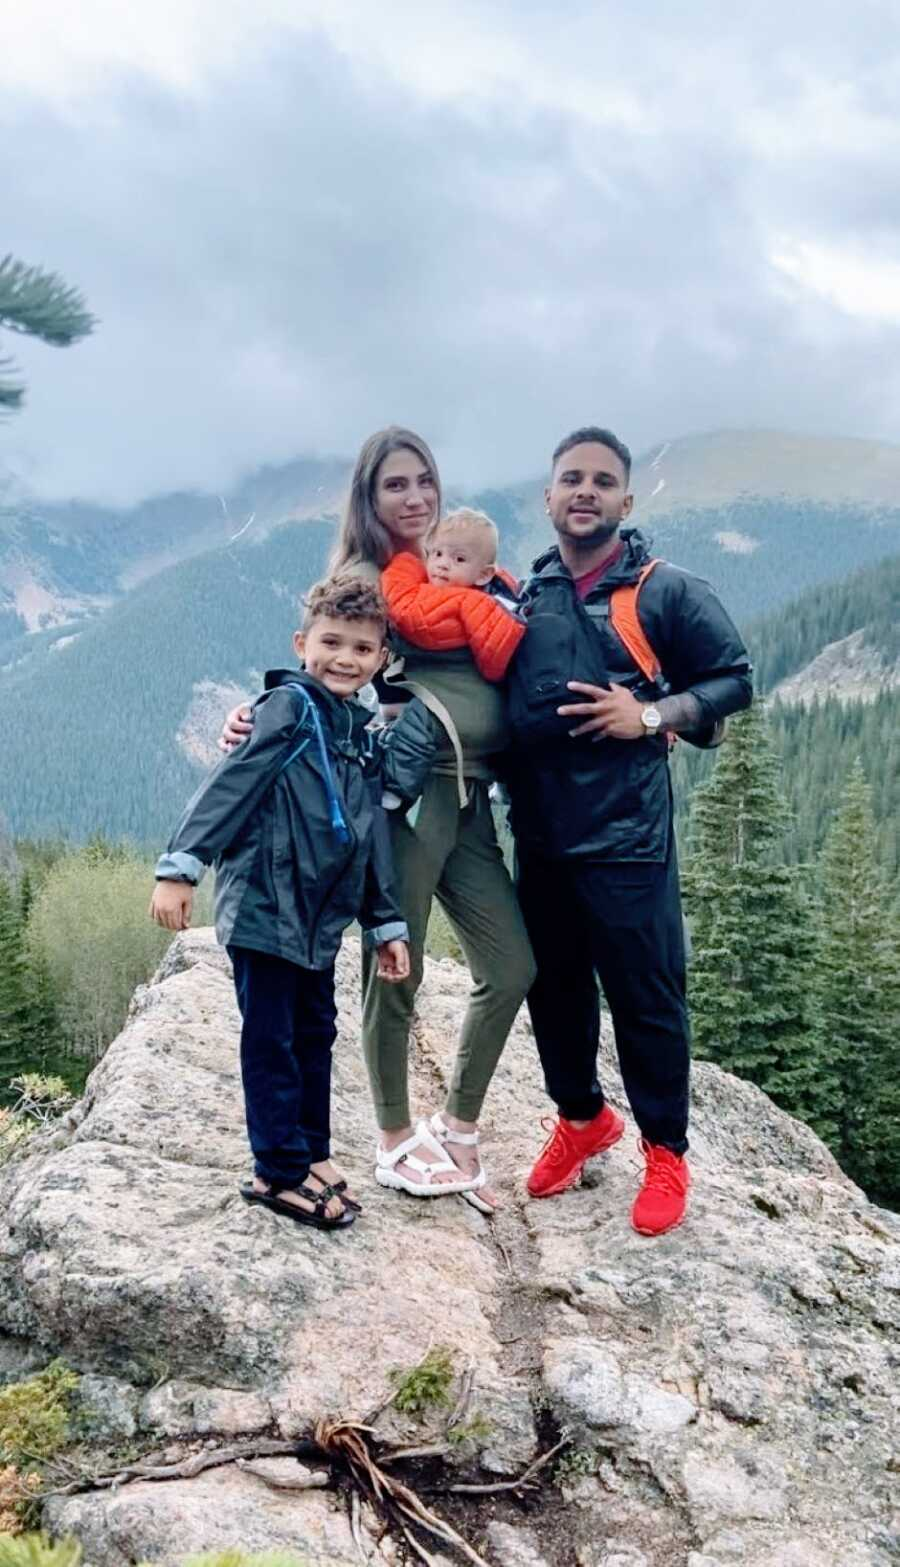 Woman pregnant with her third son poses for a photo with her family while they hike in a mountainous area